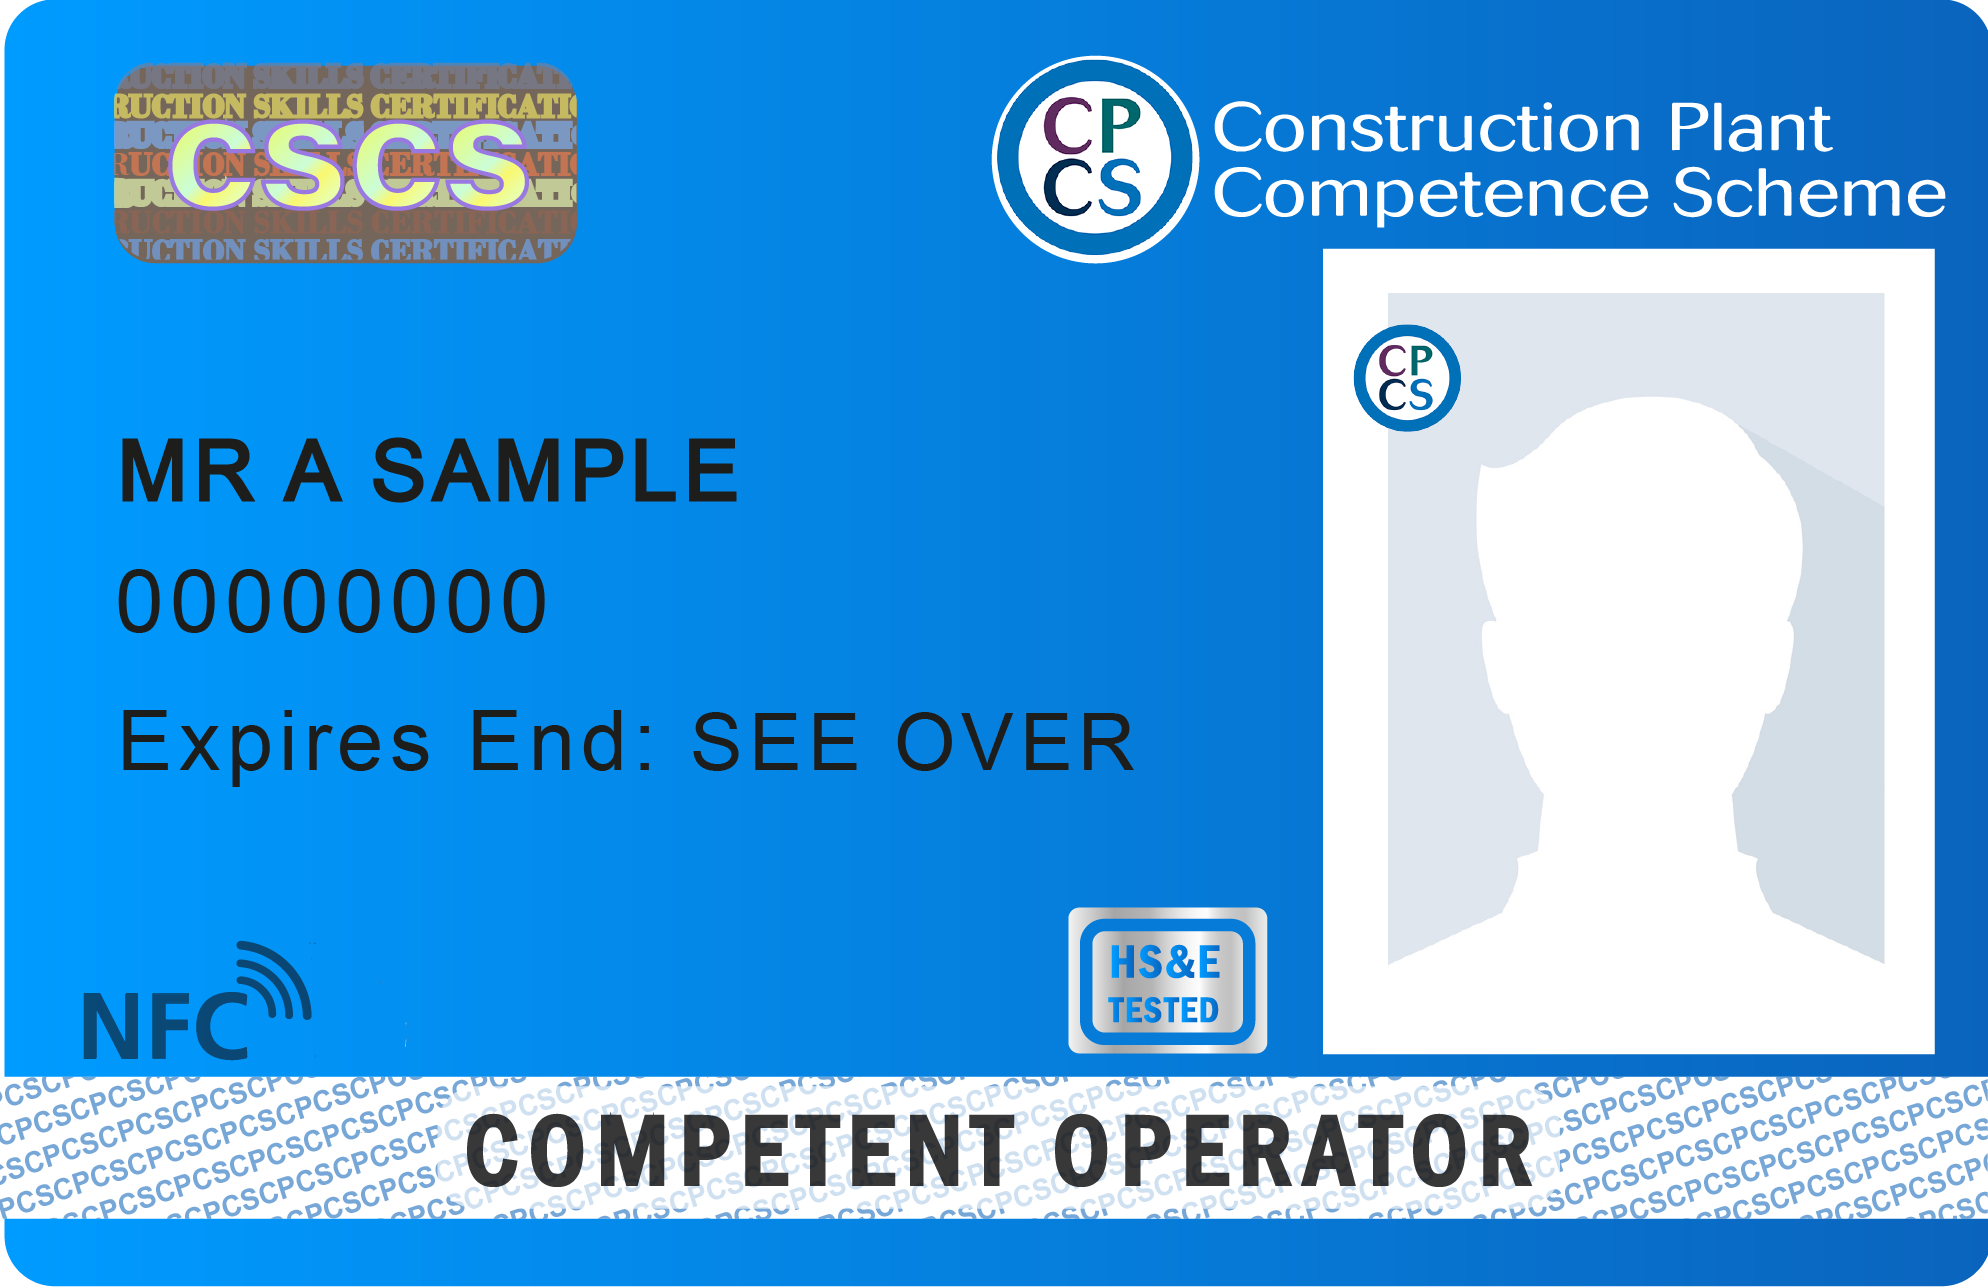 Image shows CPCS Blue Competent Operator card